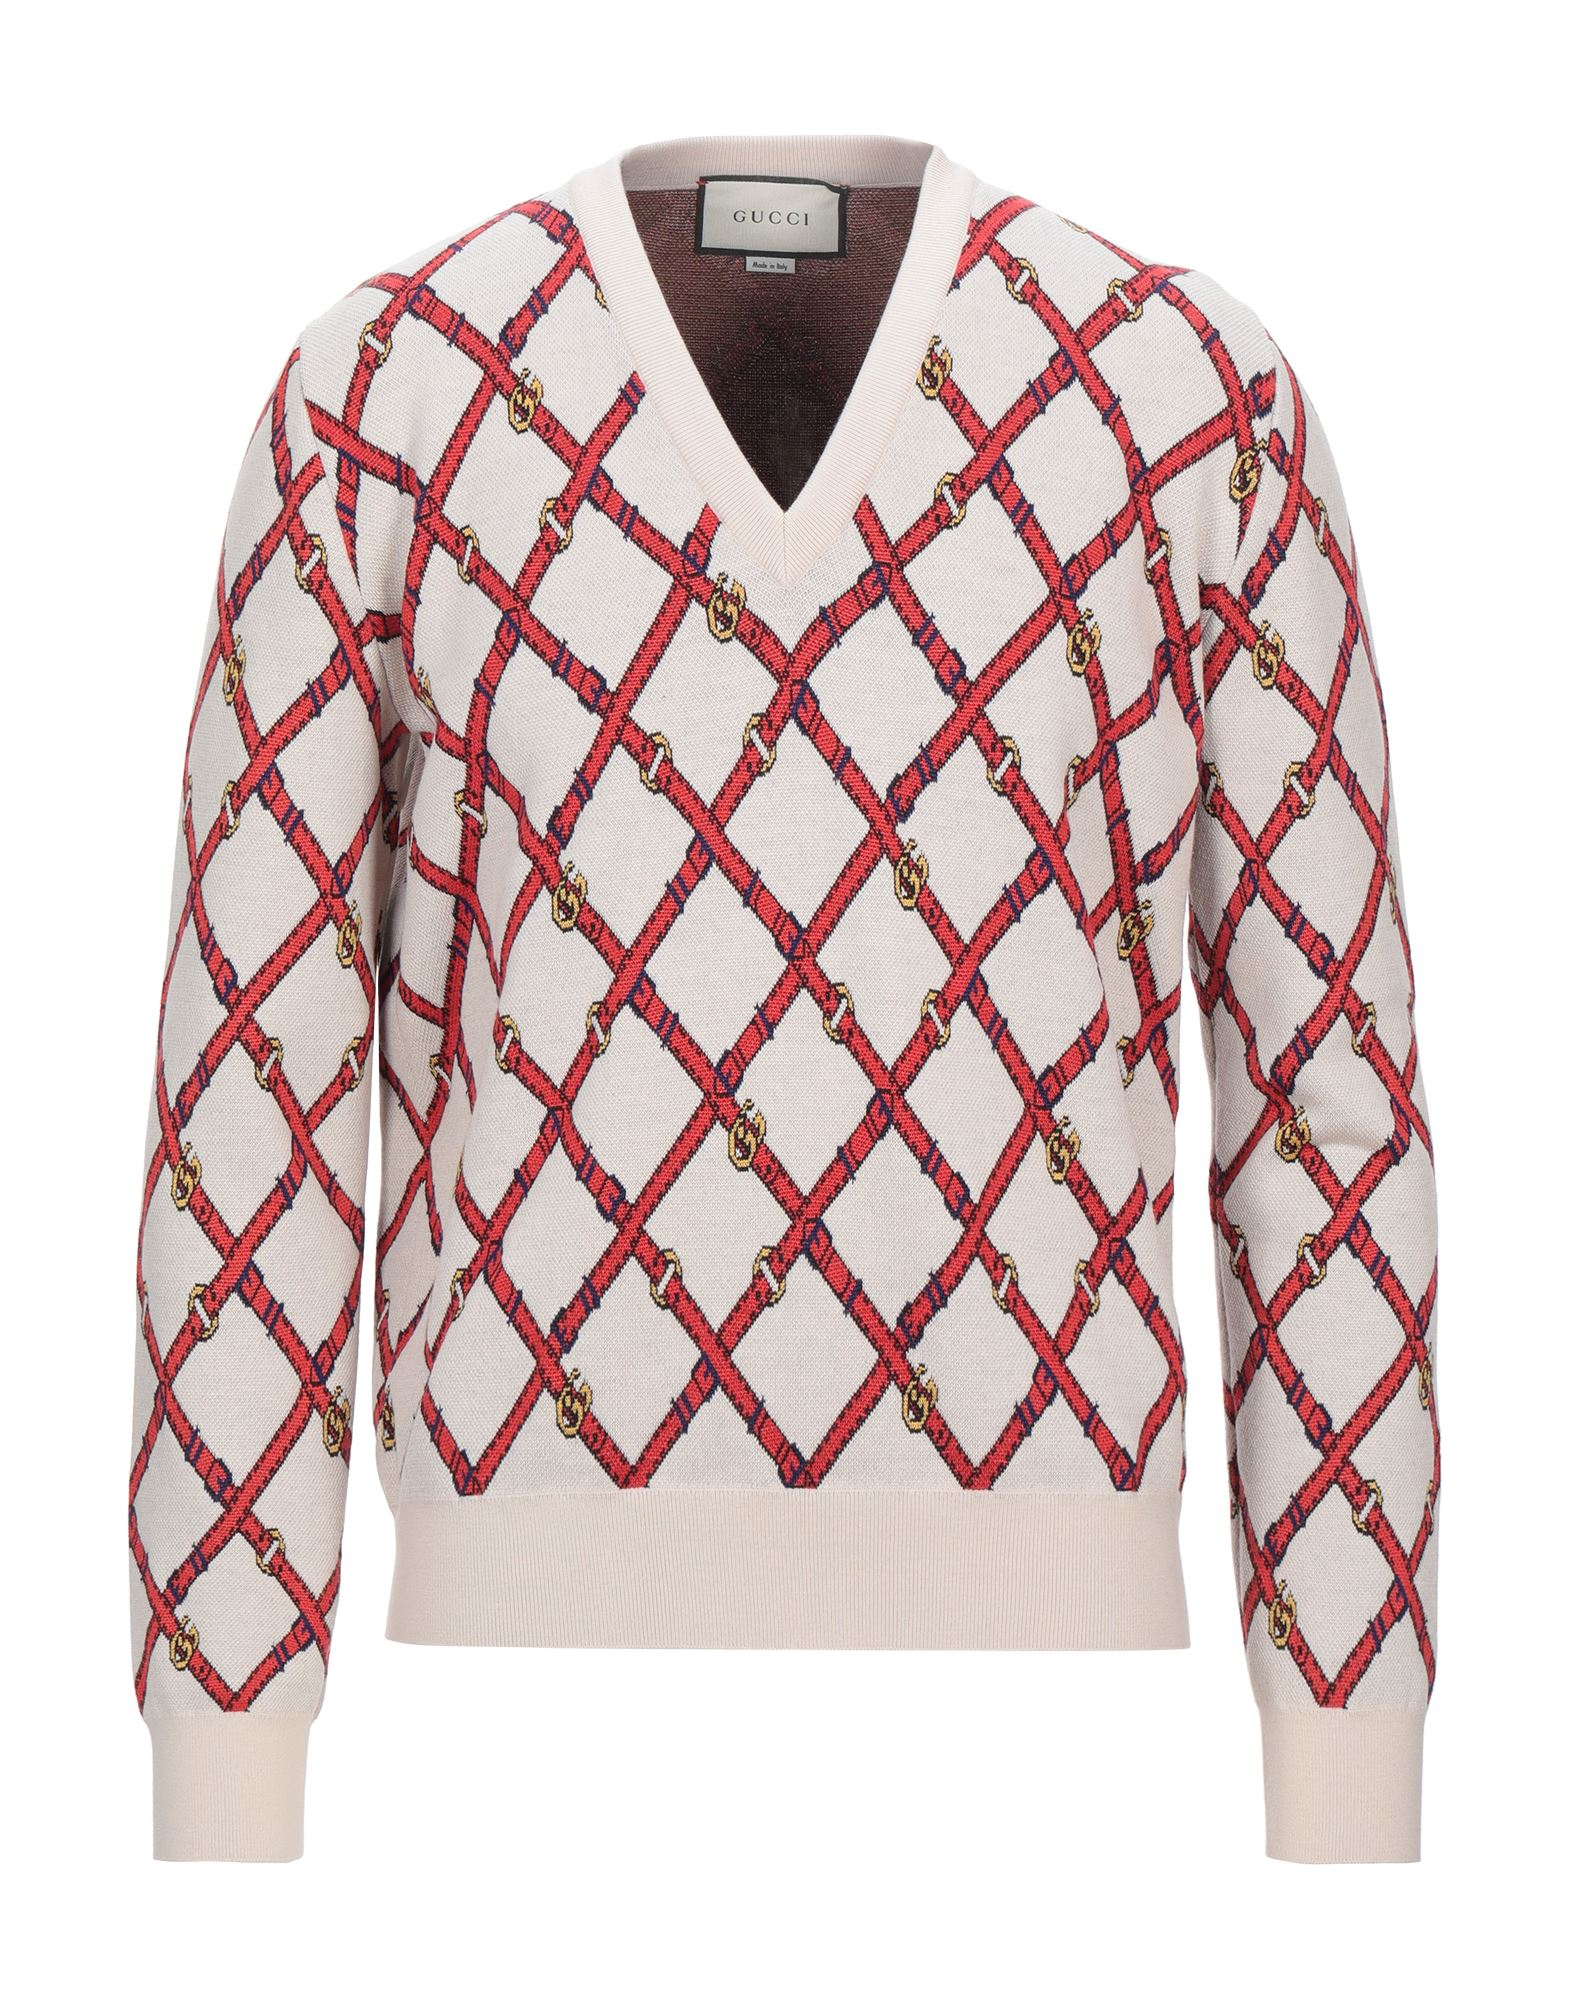 GUCCI Sweaters. knitted, no appliqués, lightweight knit, v-neck, multicolor pattern, long sleeves, no pockets. 100% Wool, Polyamide, Elastane